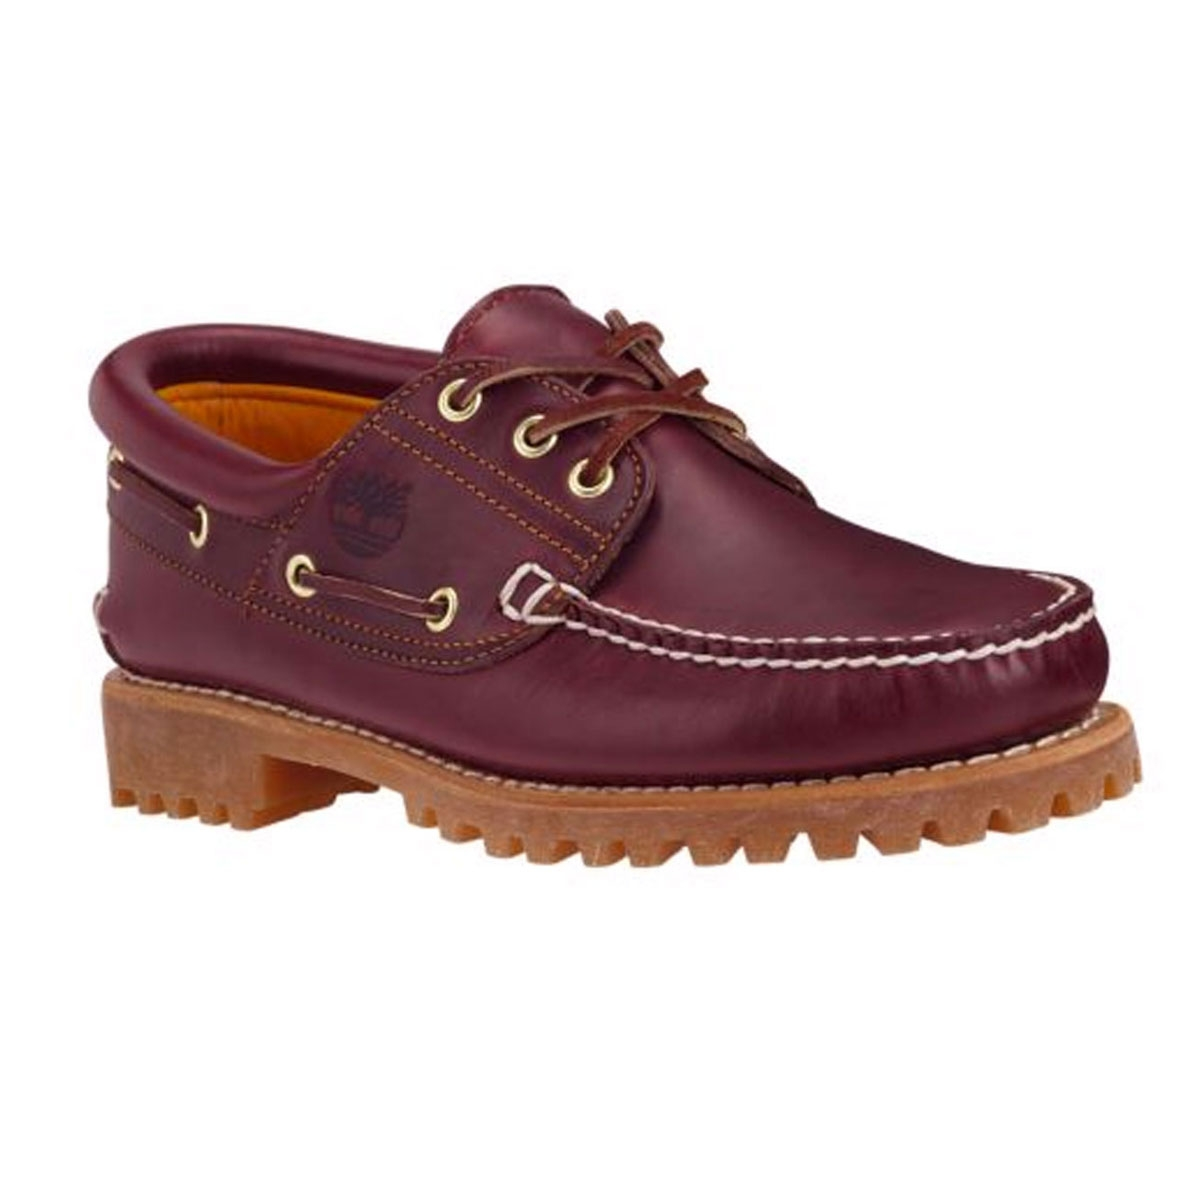 Timberland classic authentic 3 eye boat shoe men 39 s for Classic 3